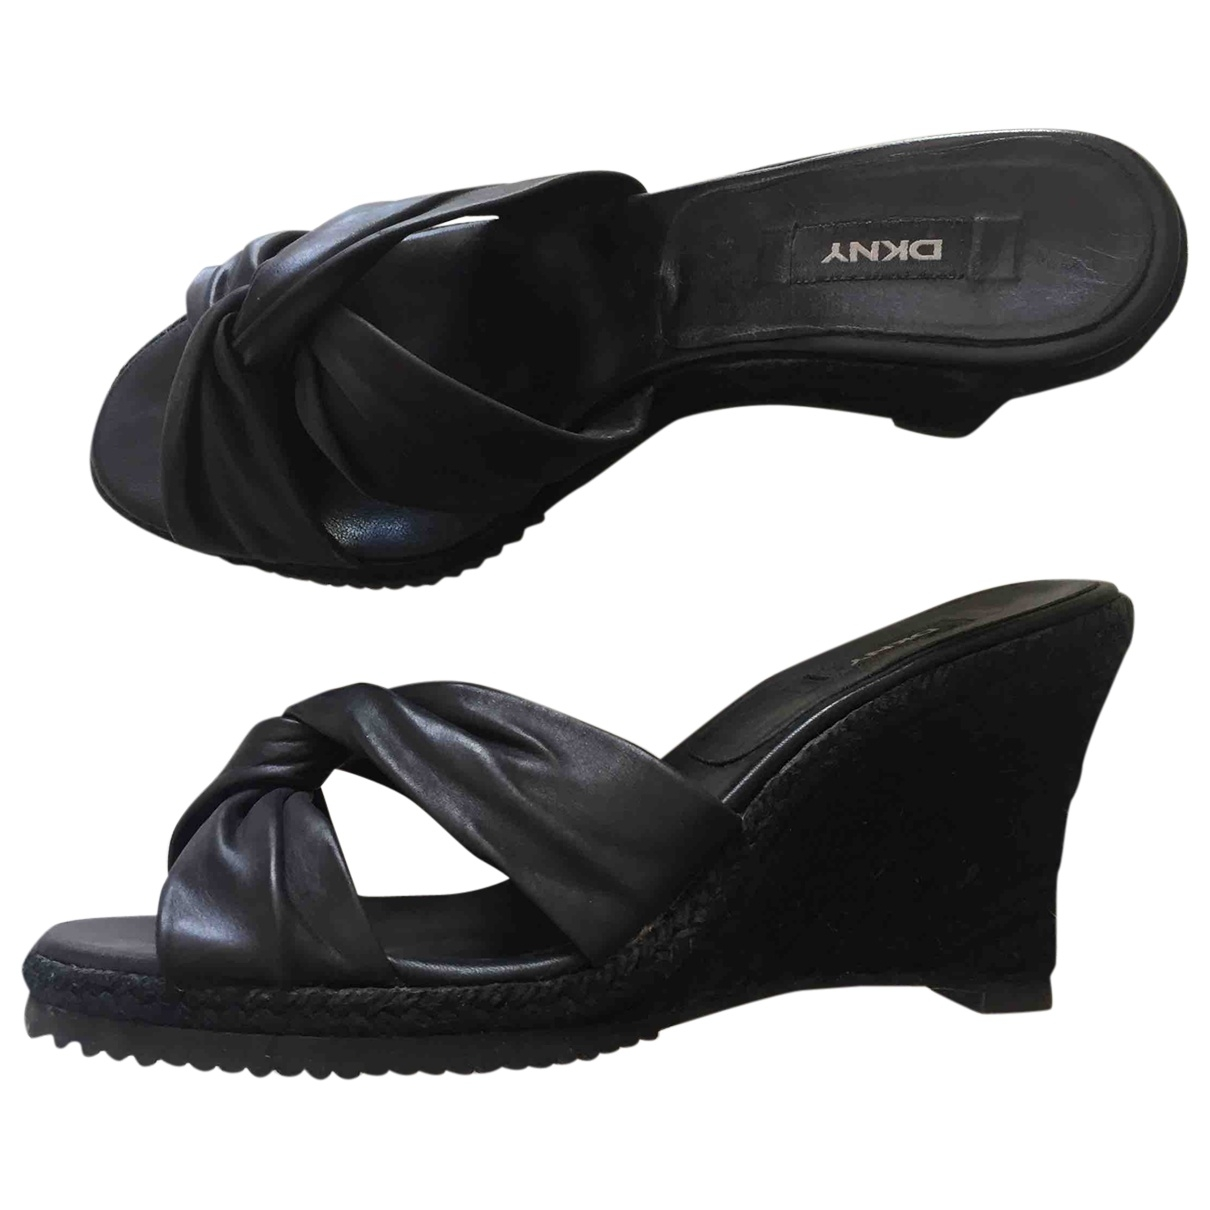 Dkny \N Black Leather Sandals for Women 40.5 EU